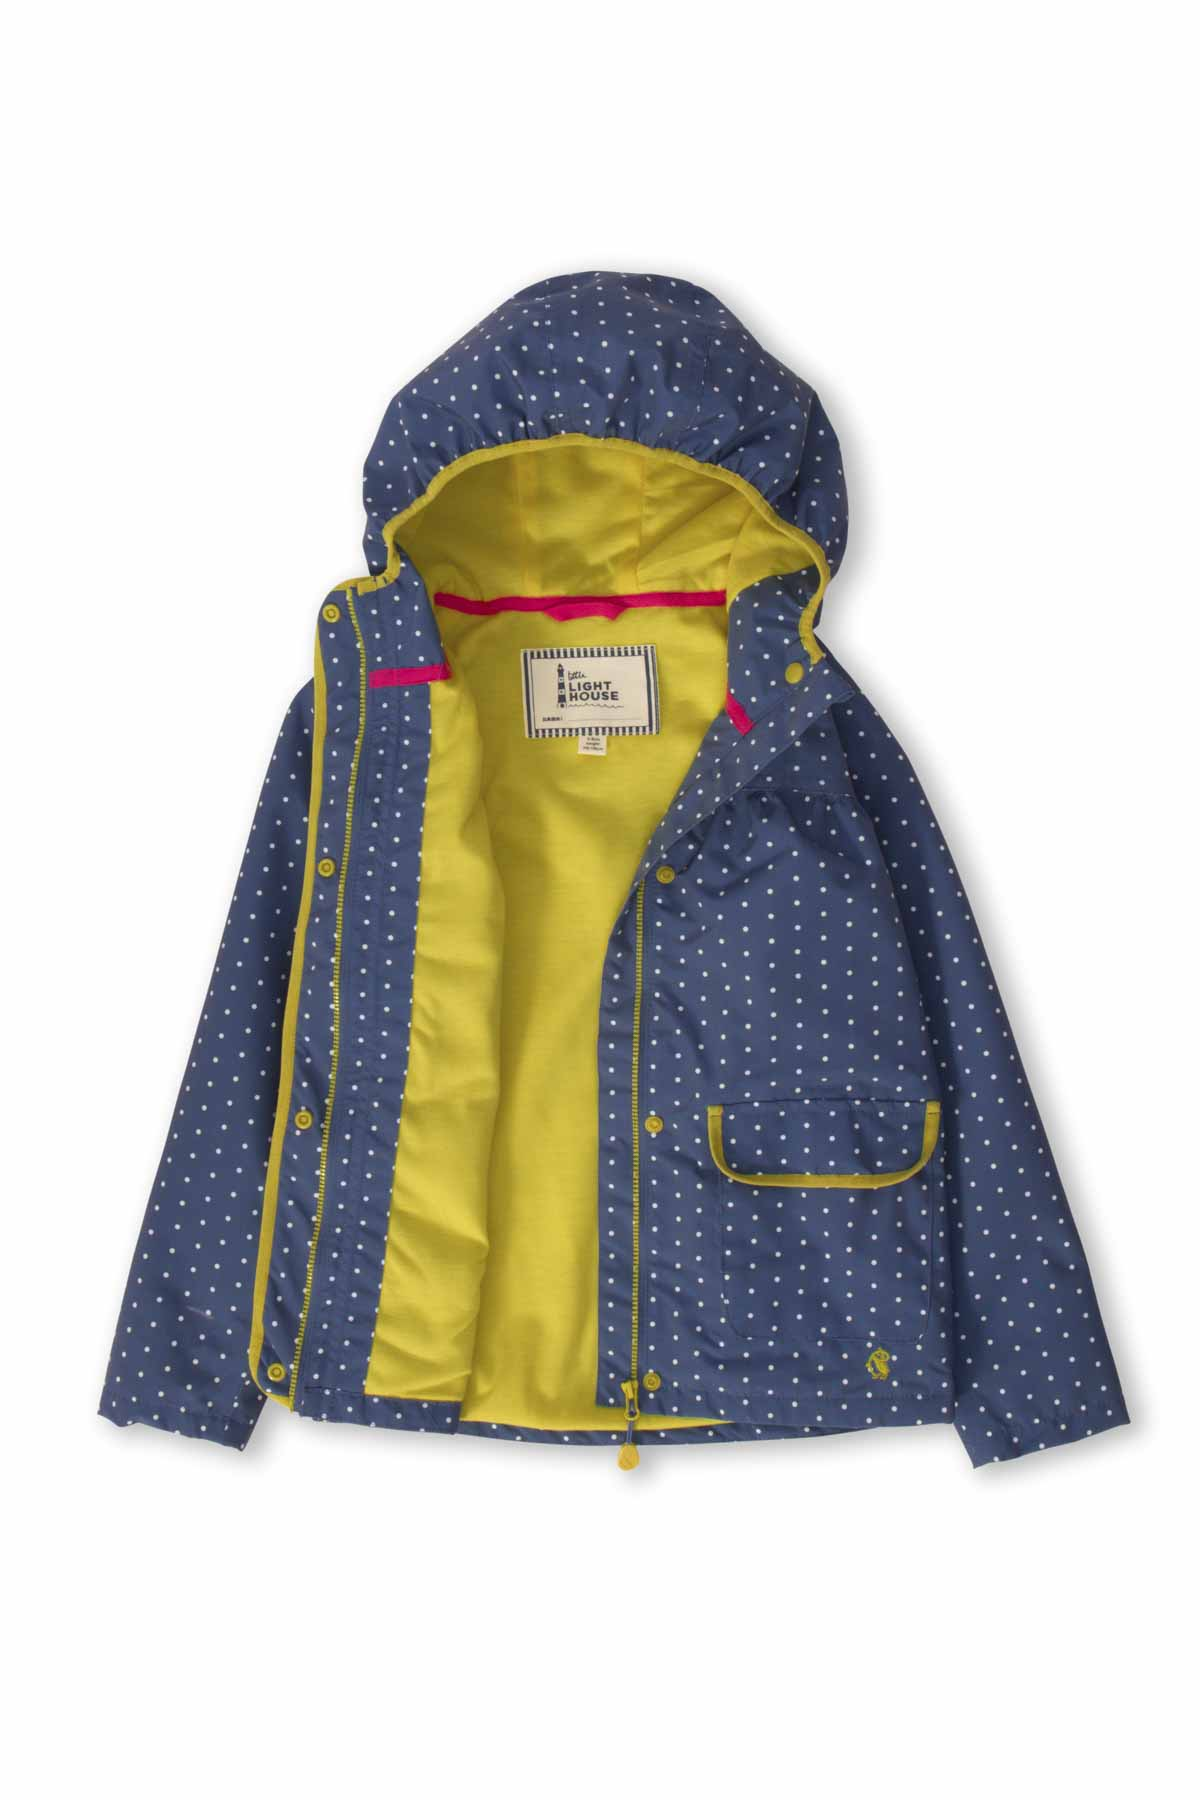 Lighthouse Fleur Girl's Waterproof Coat - Blue Bay Dot